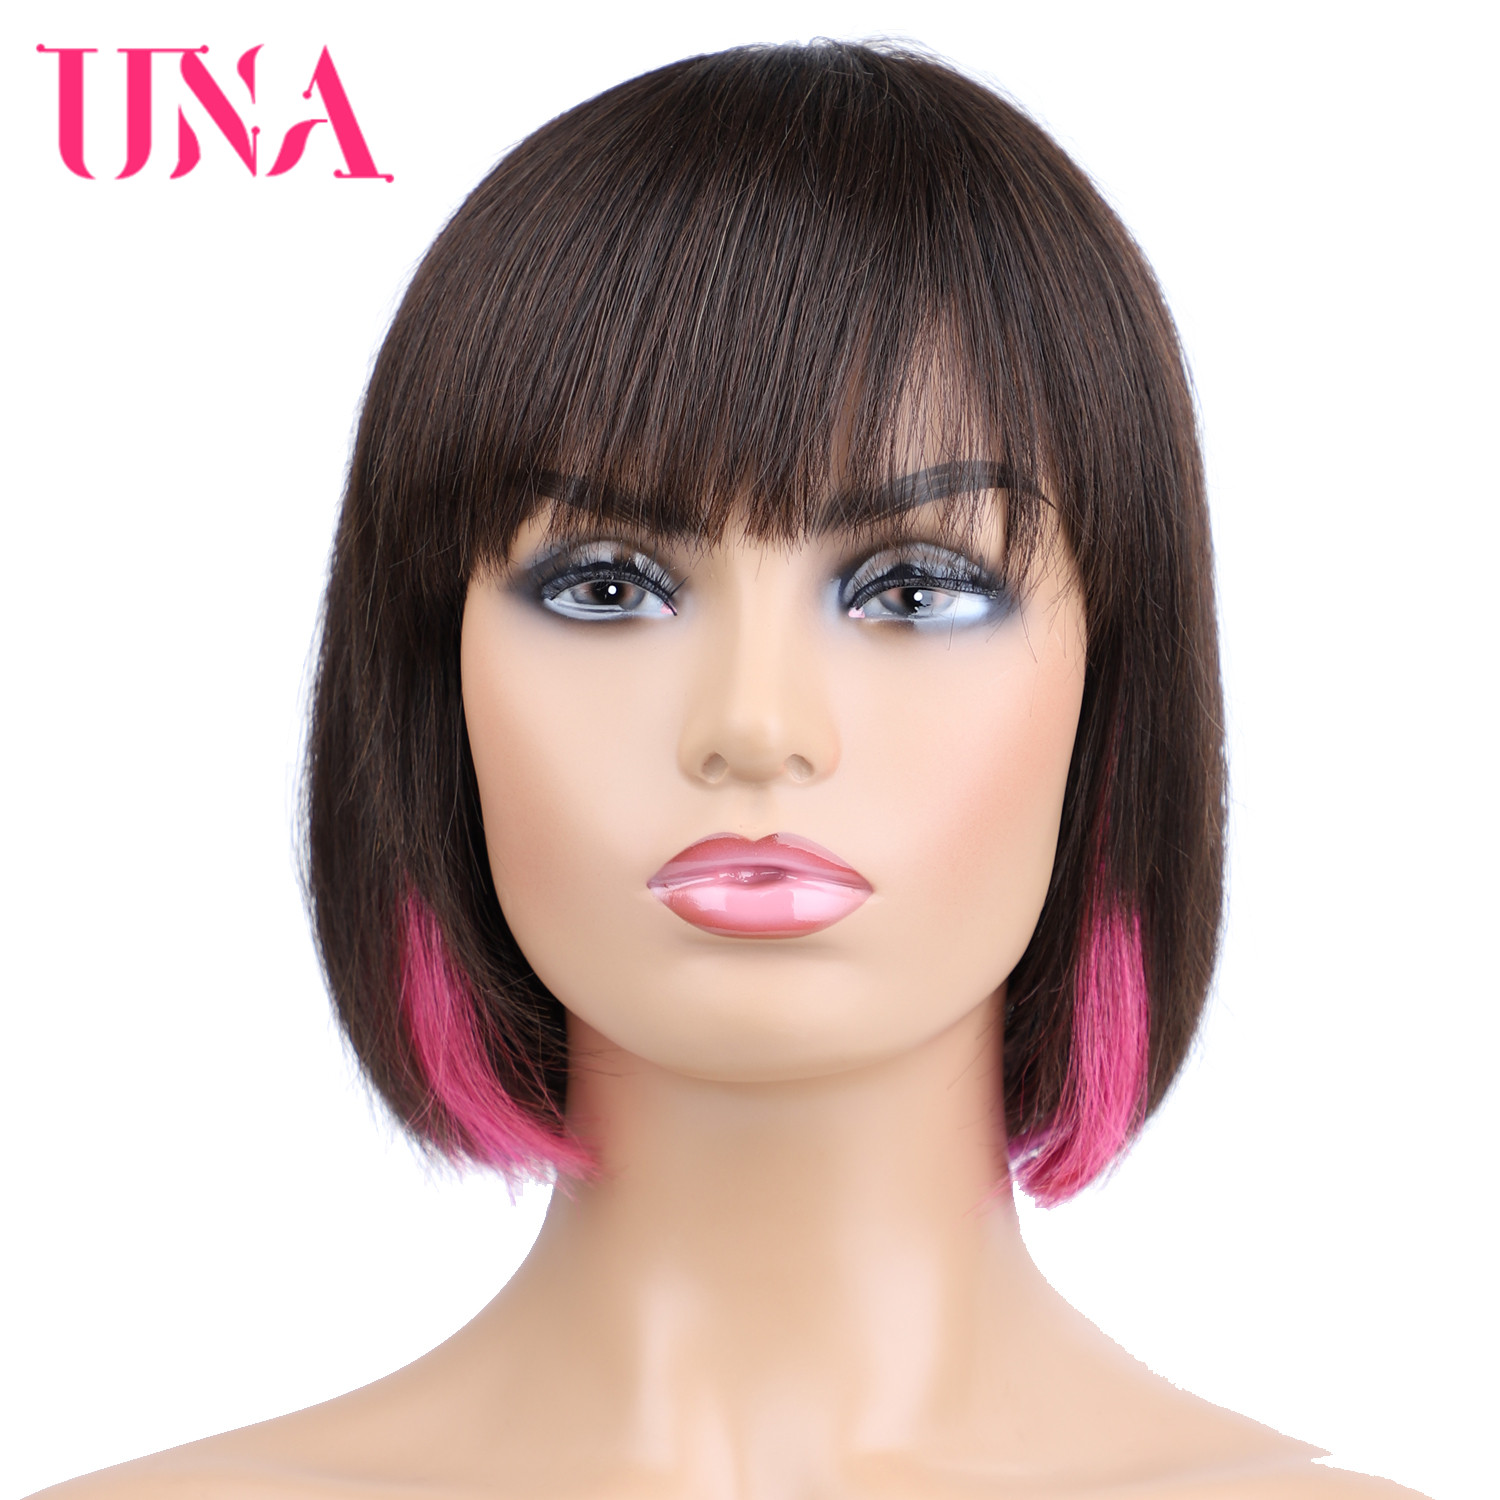 Brazilian Human Hair Wigs Non-Remy Hair BOBO Wigs Straight Machine Human Wigs With MOMO Web 10 Inches Long 12 Colors Avalable